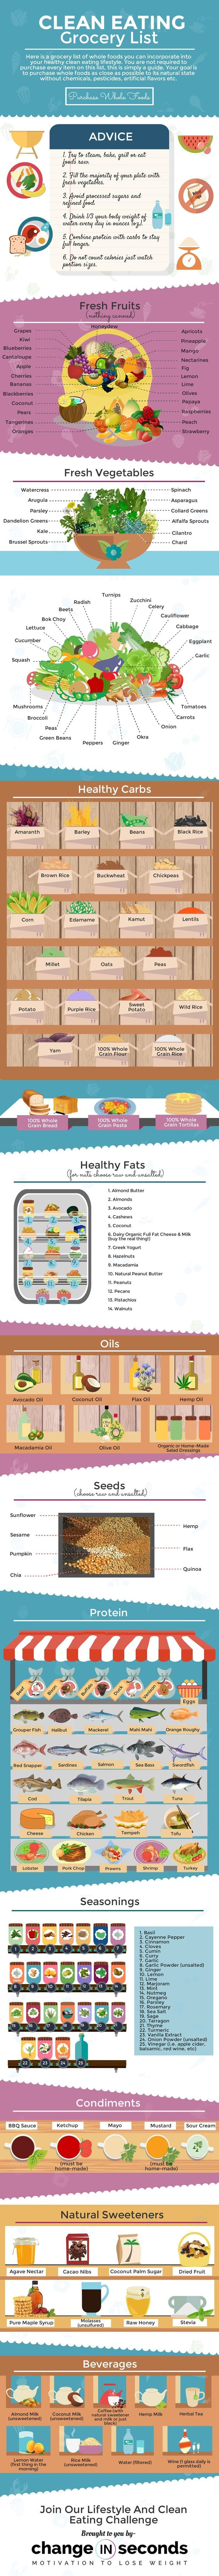 Clean Eating Grocery List For Beginners Infographic & PDF Download